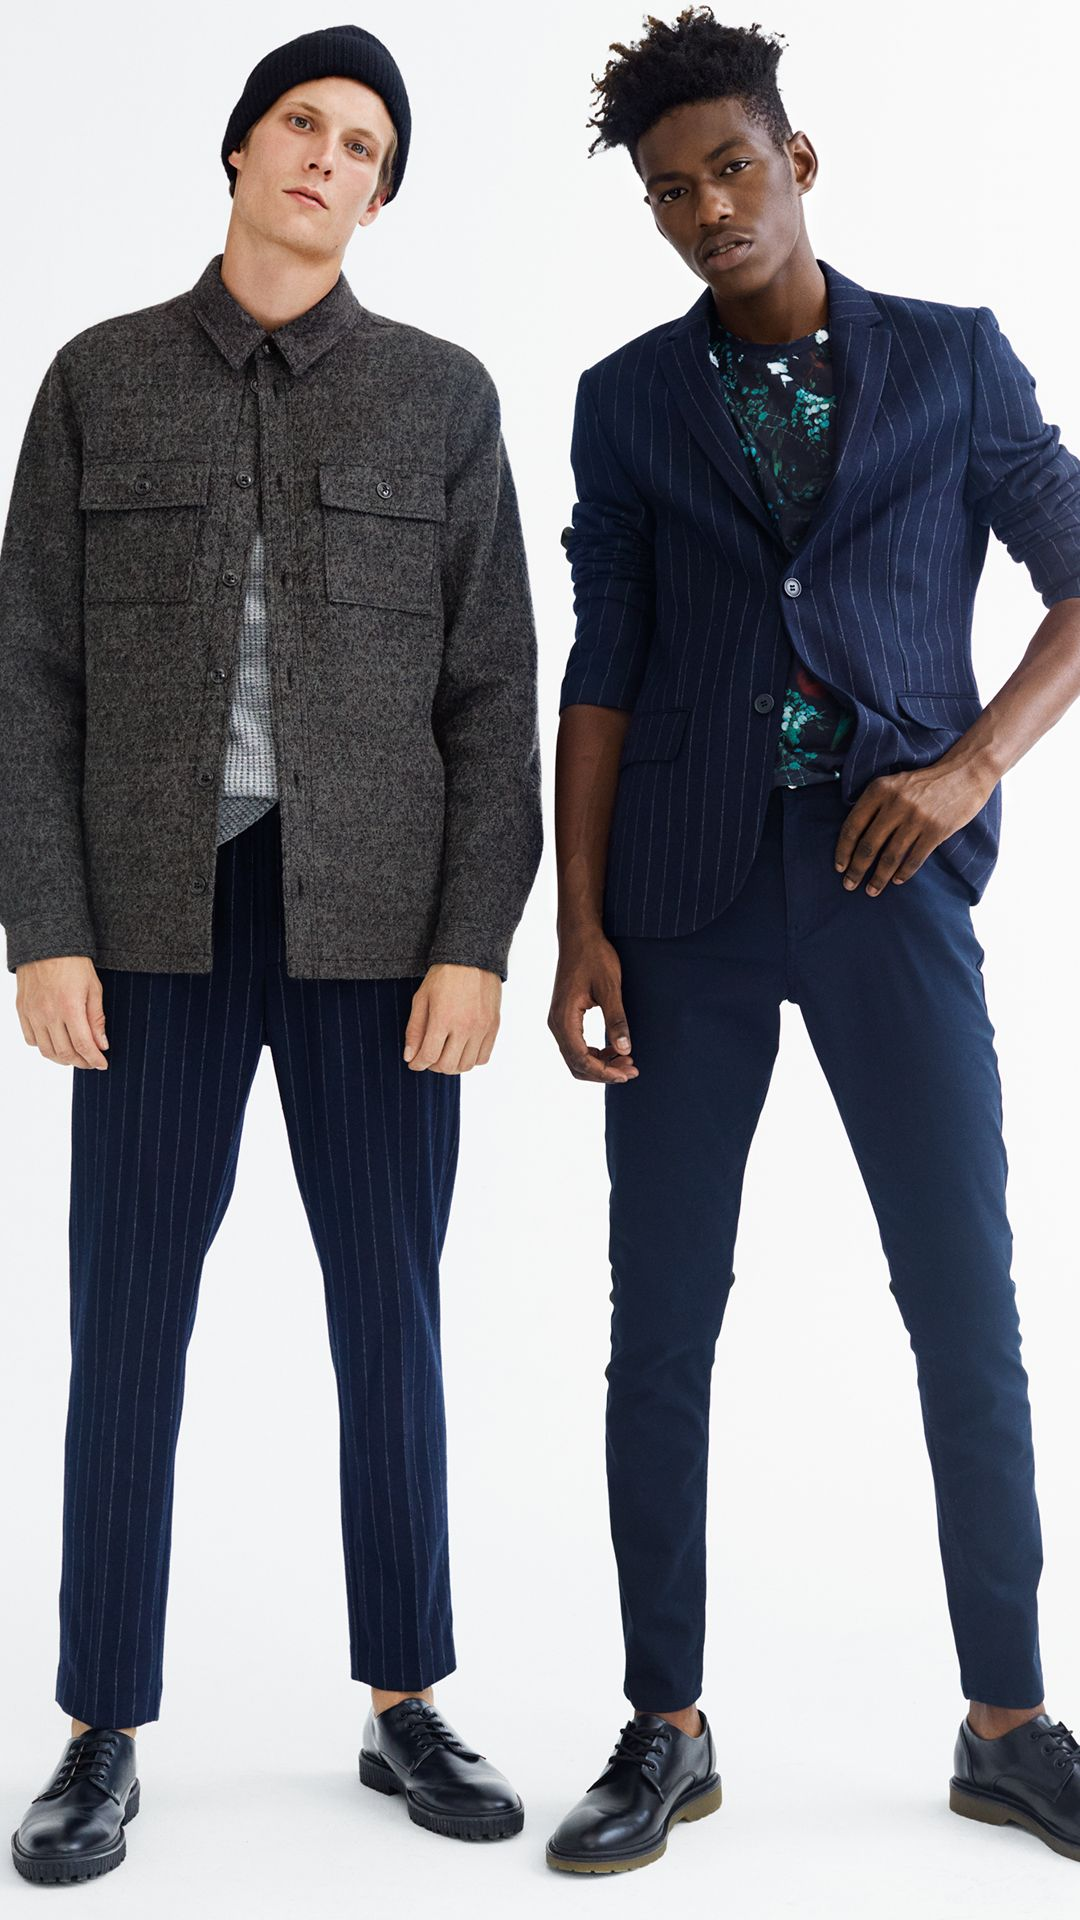 0a0c58fac34 Our round-up of the latest menswear trends: new style combinations  unlocked, the It print and new fits. | H&M For Men